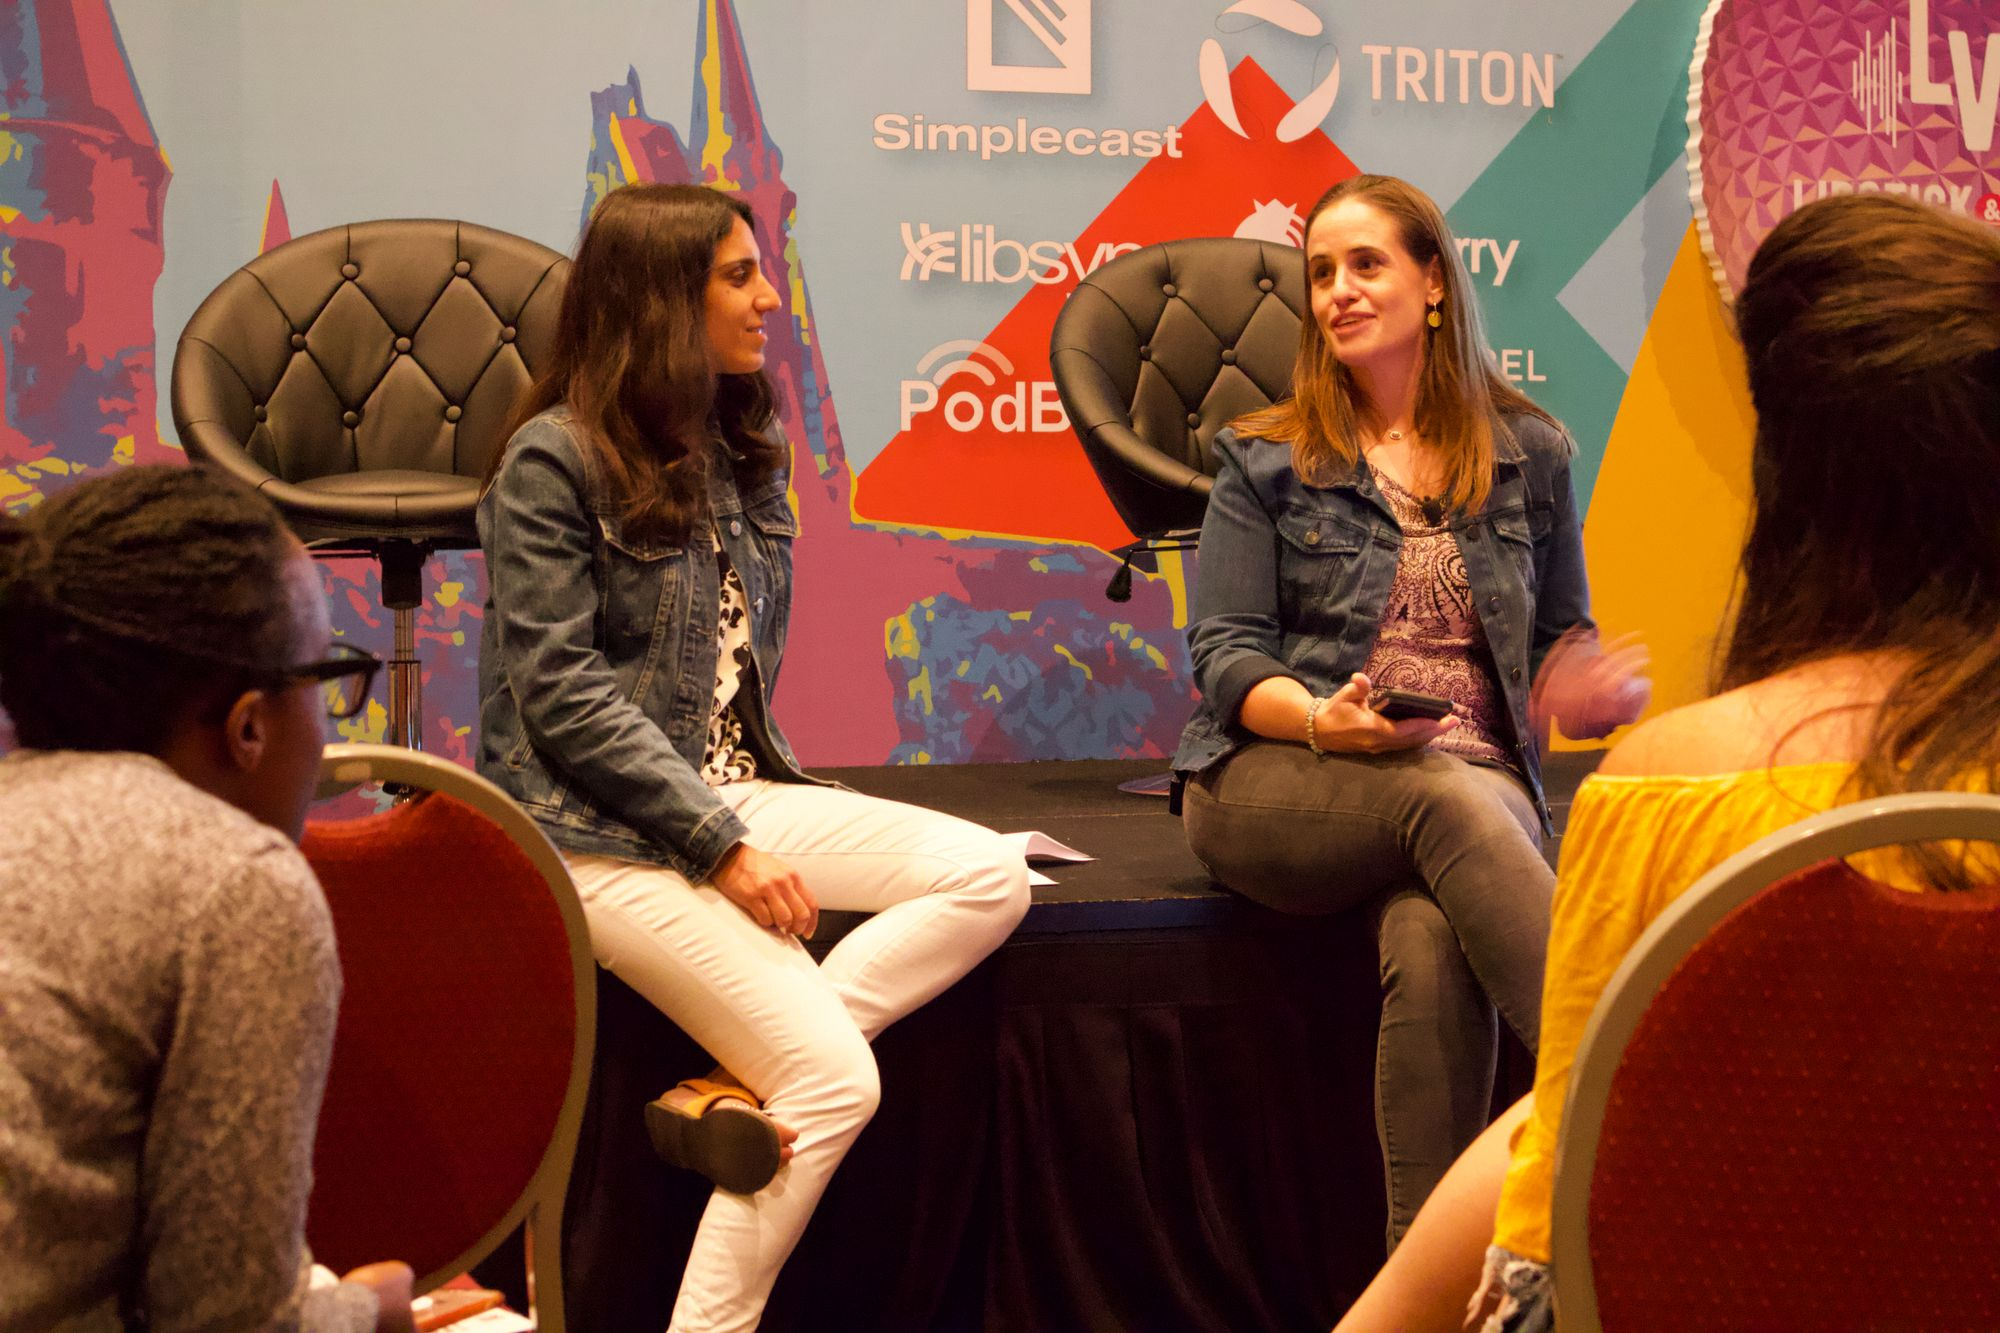 4 Takeaways from PM19's Podcasting Wage Gap Breakout Session